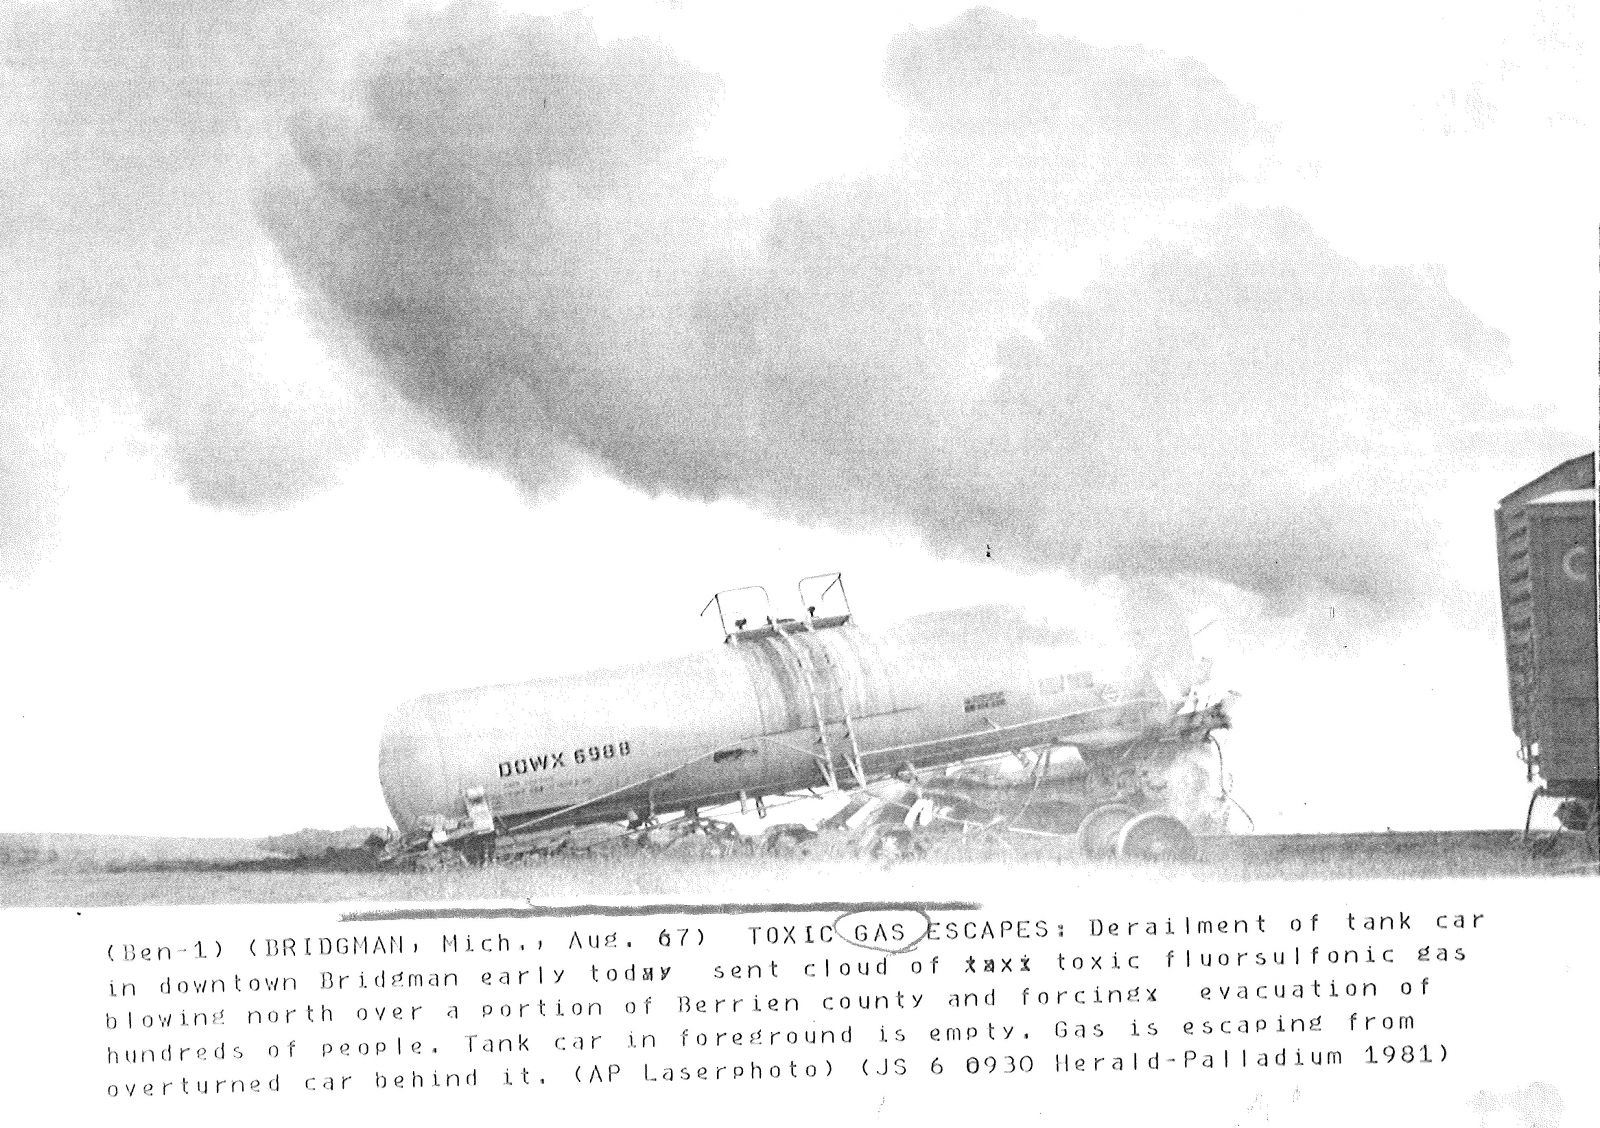 Bridgman Train Derailment 1981